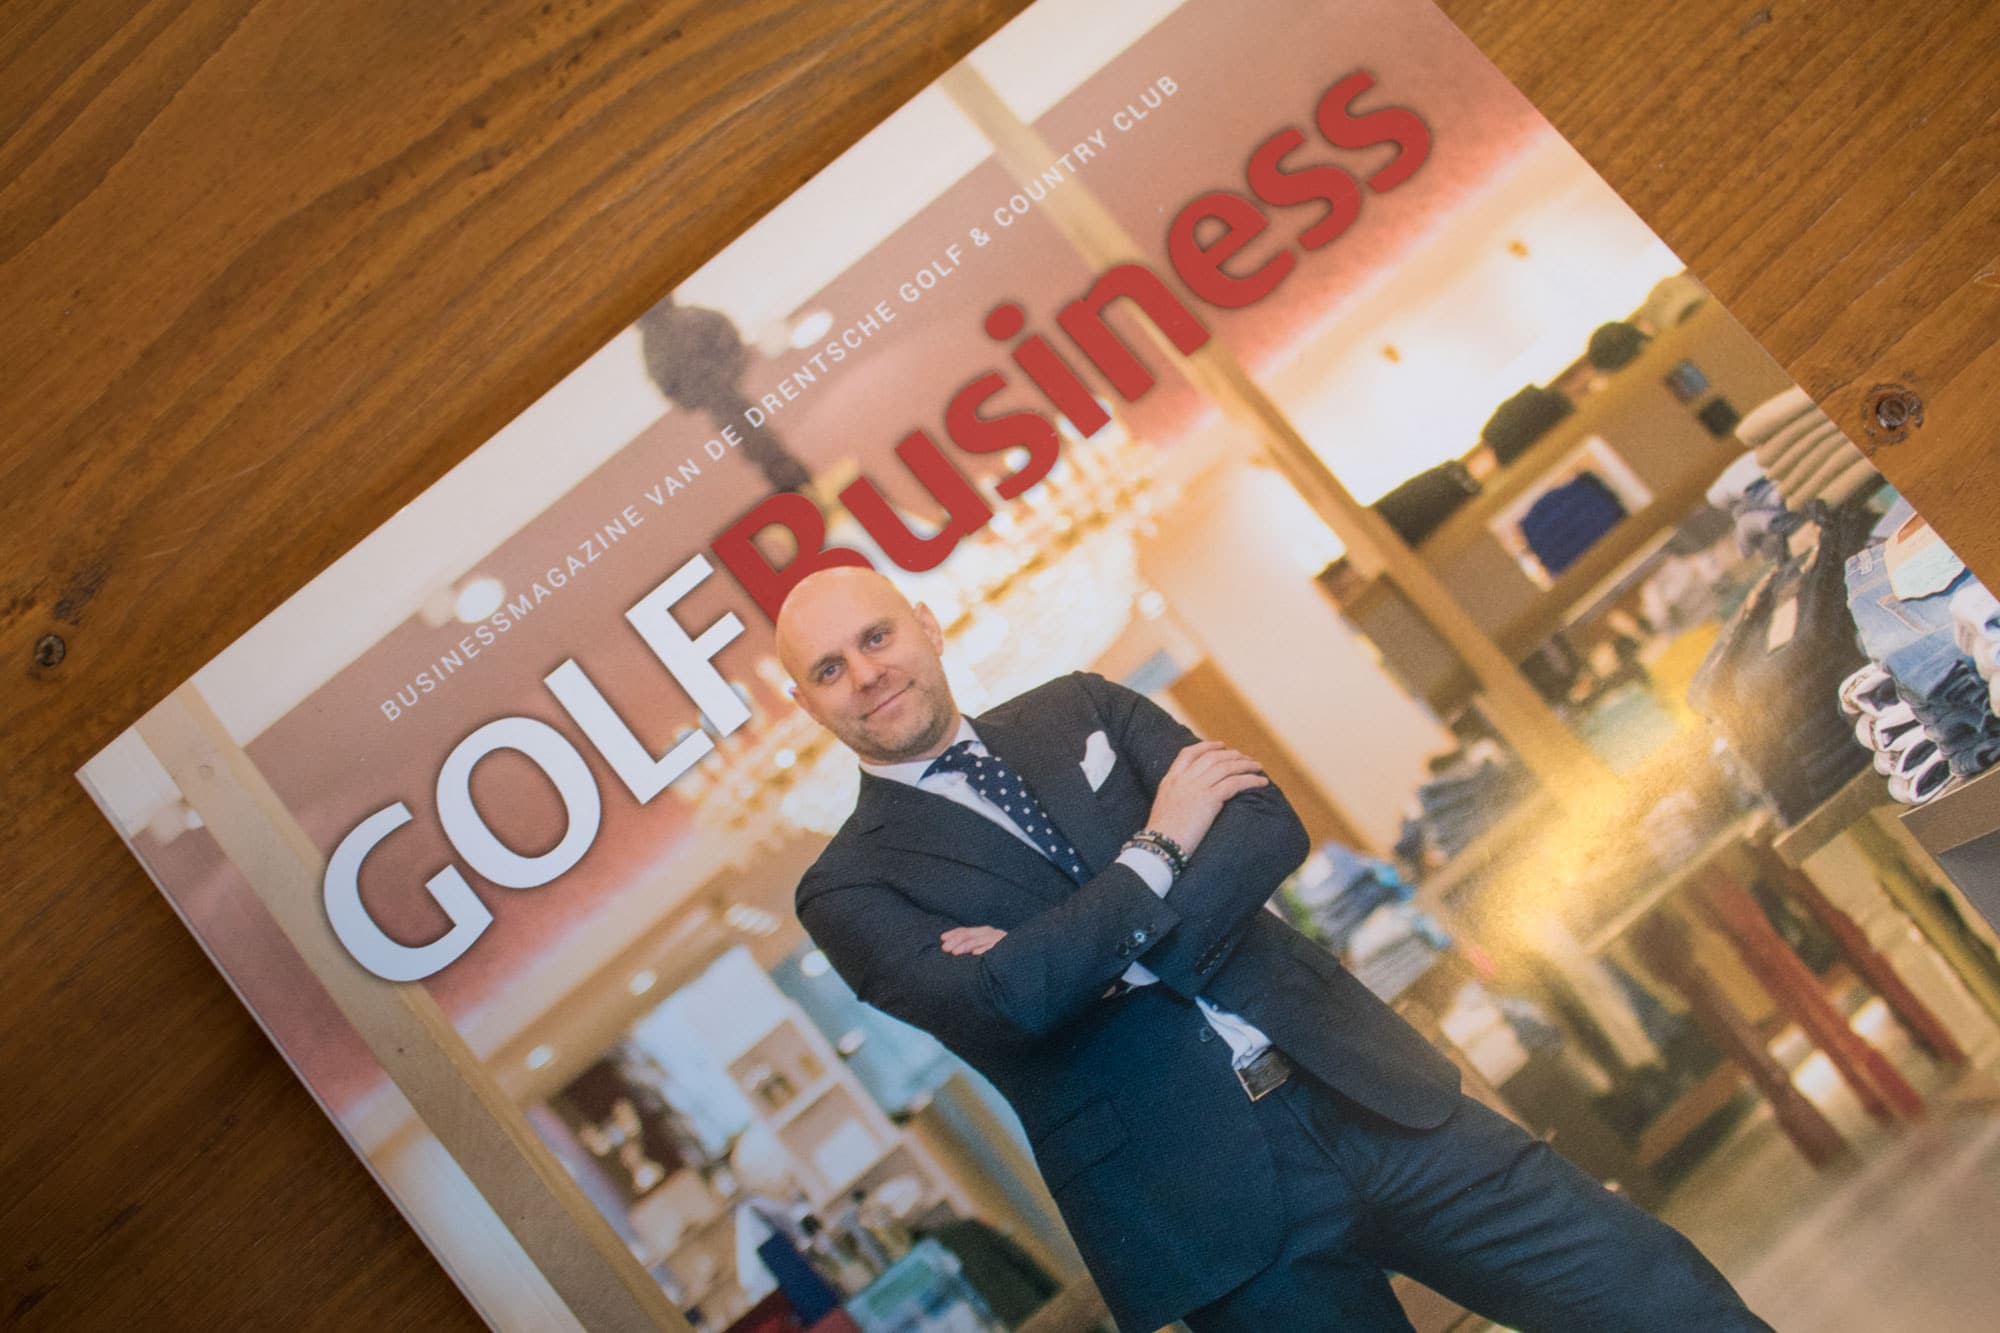 GOLFBusiness